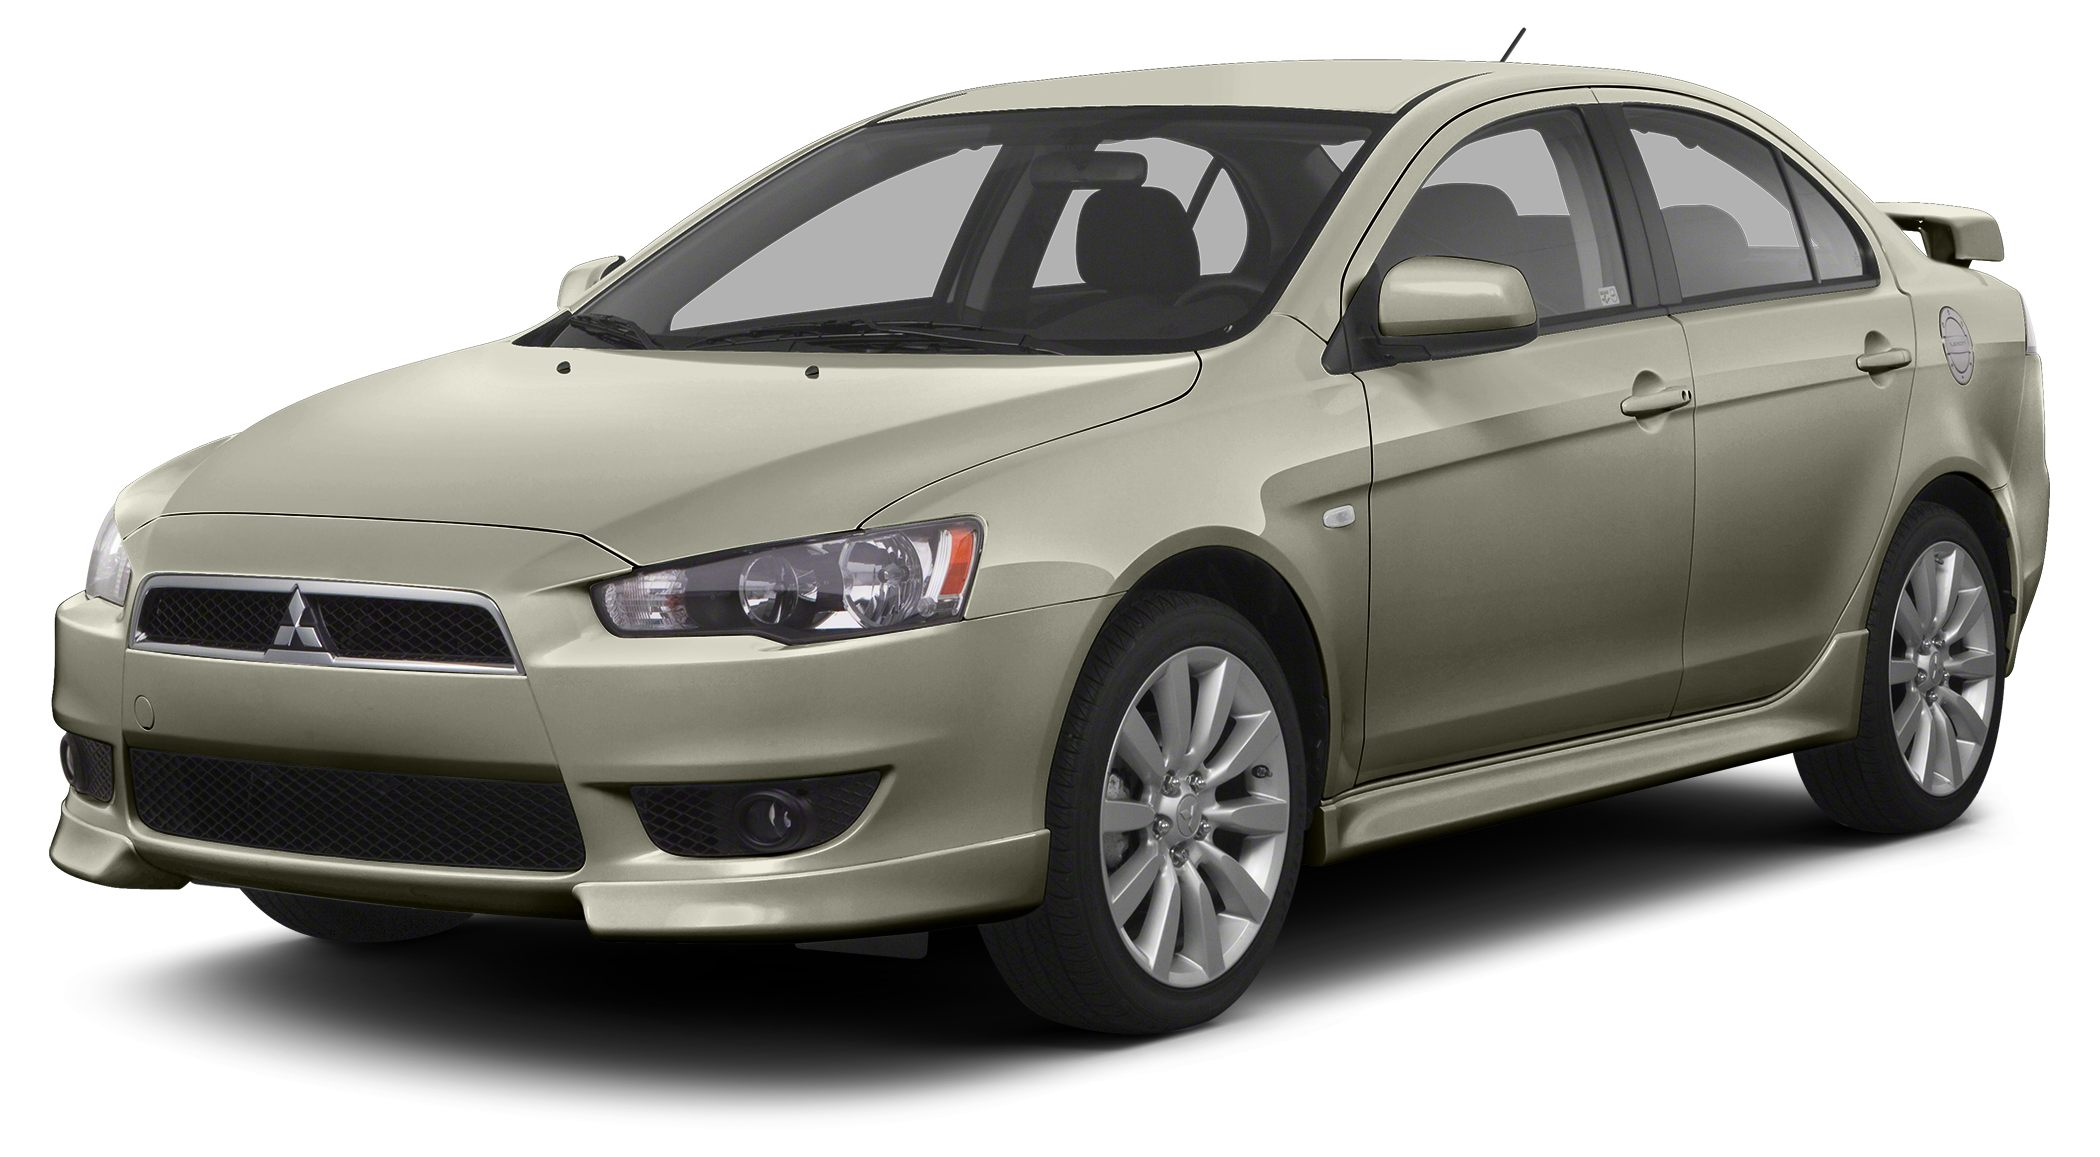 2014 Mitsubishi Lancer ES OUR PRICESYoure probably wondering why our prices are so much lower th